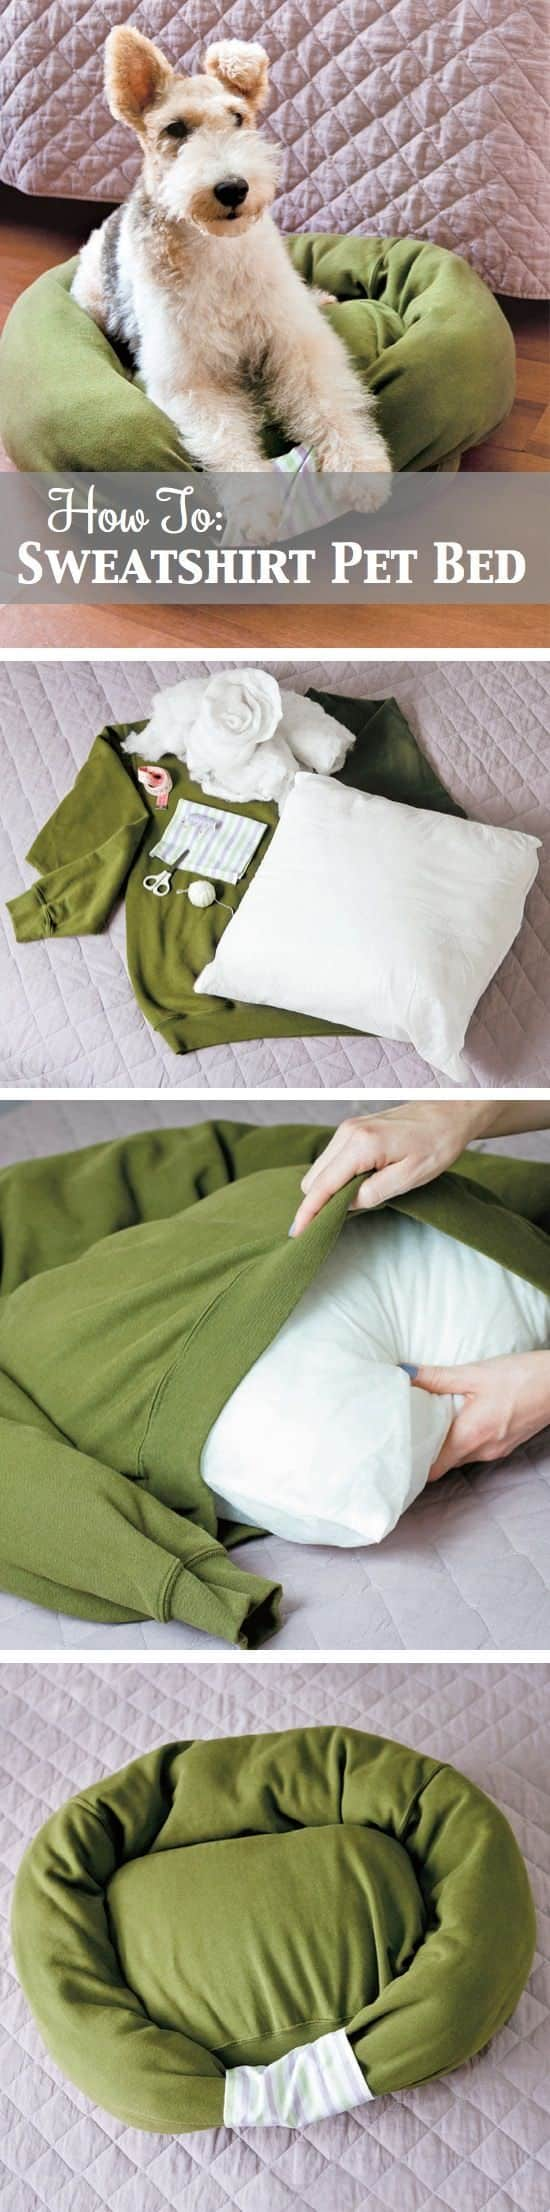 8. DIY SWEATSHIRT PET BED